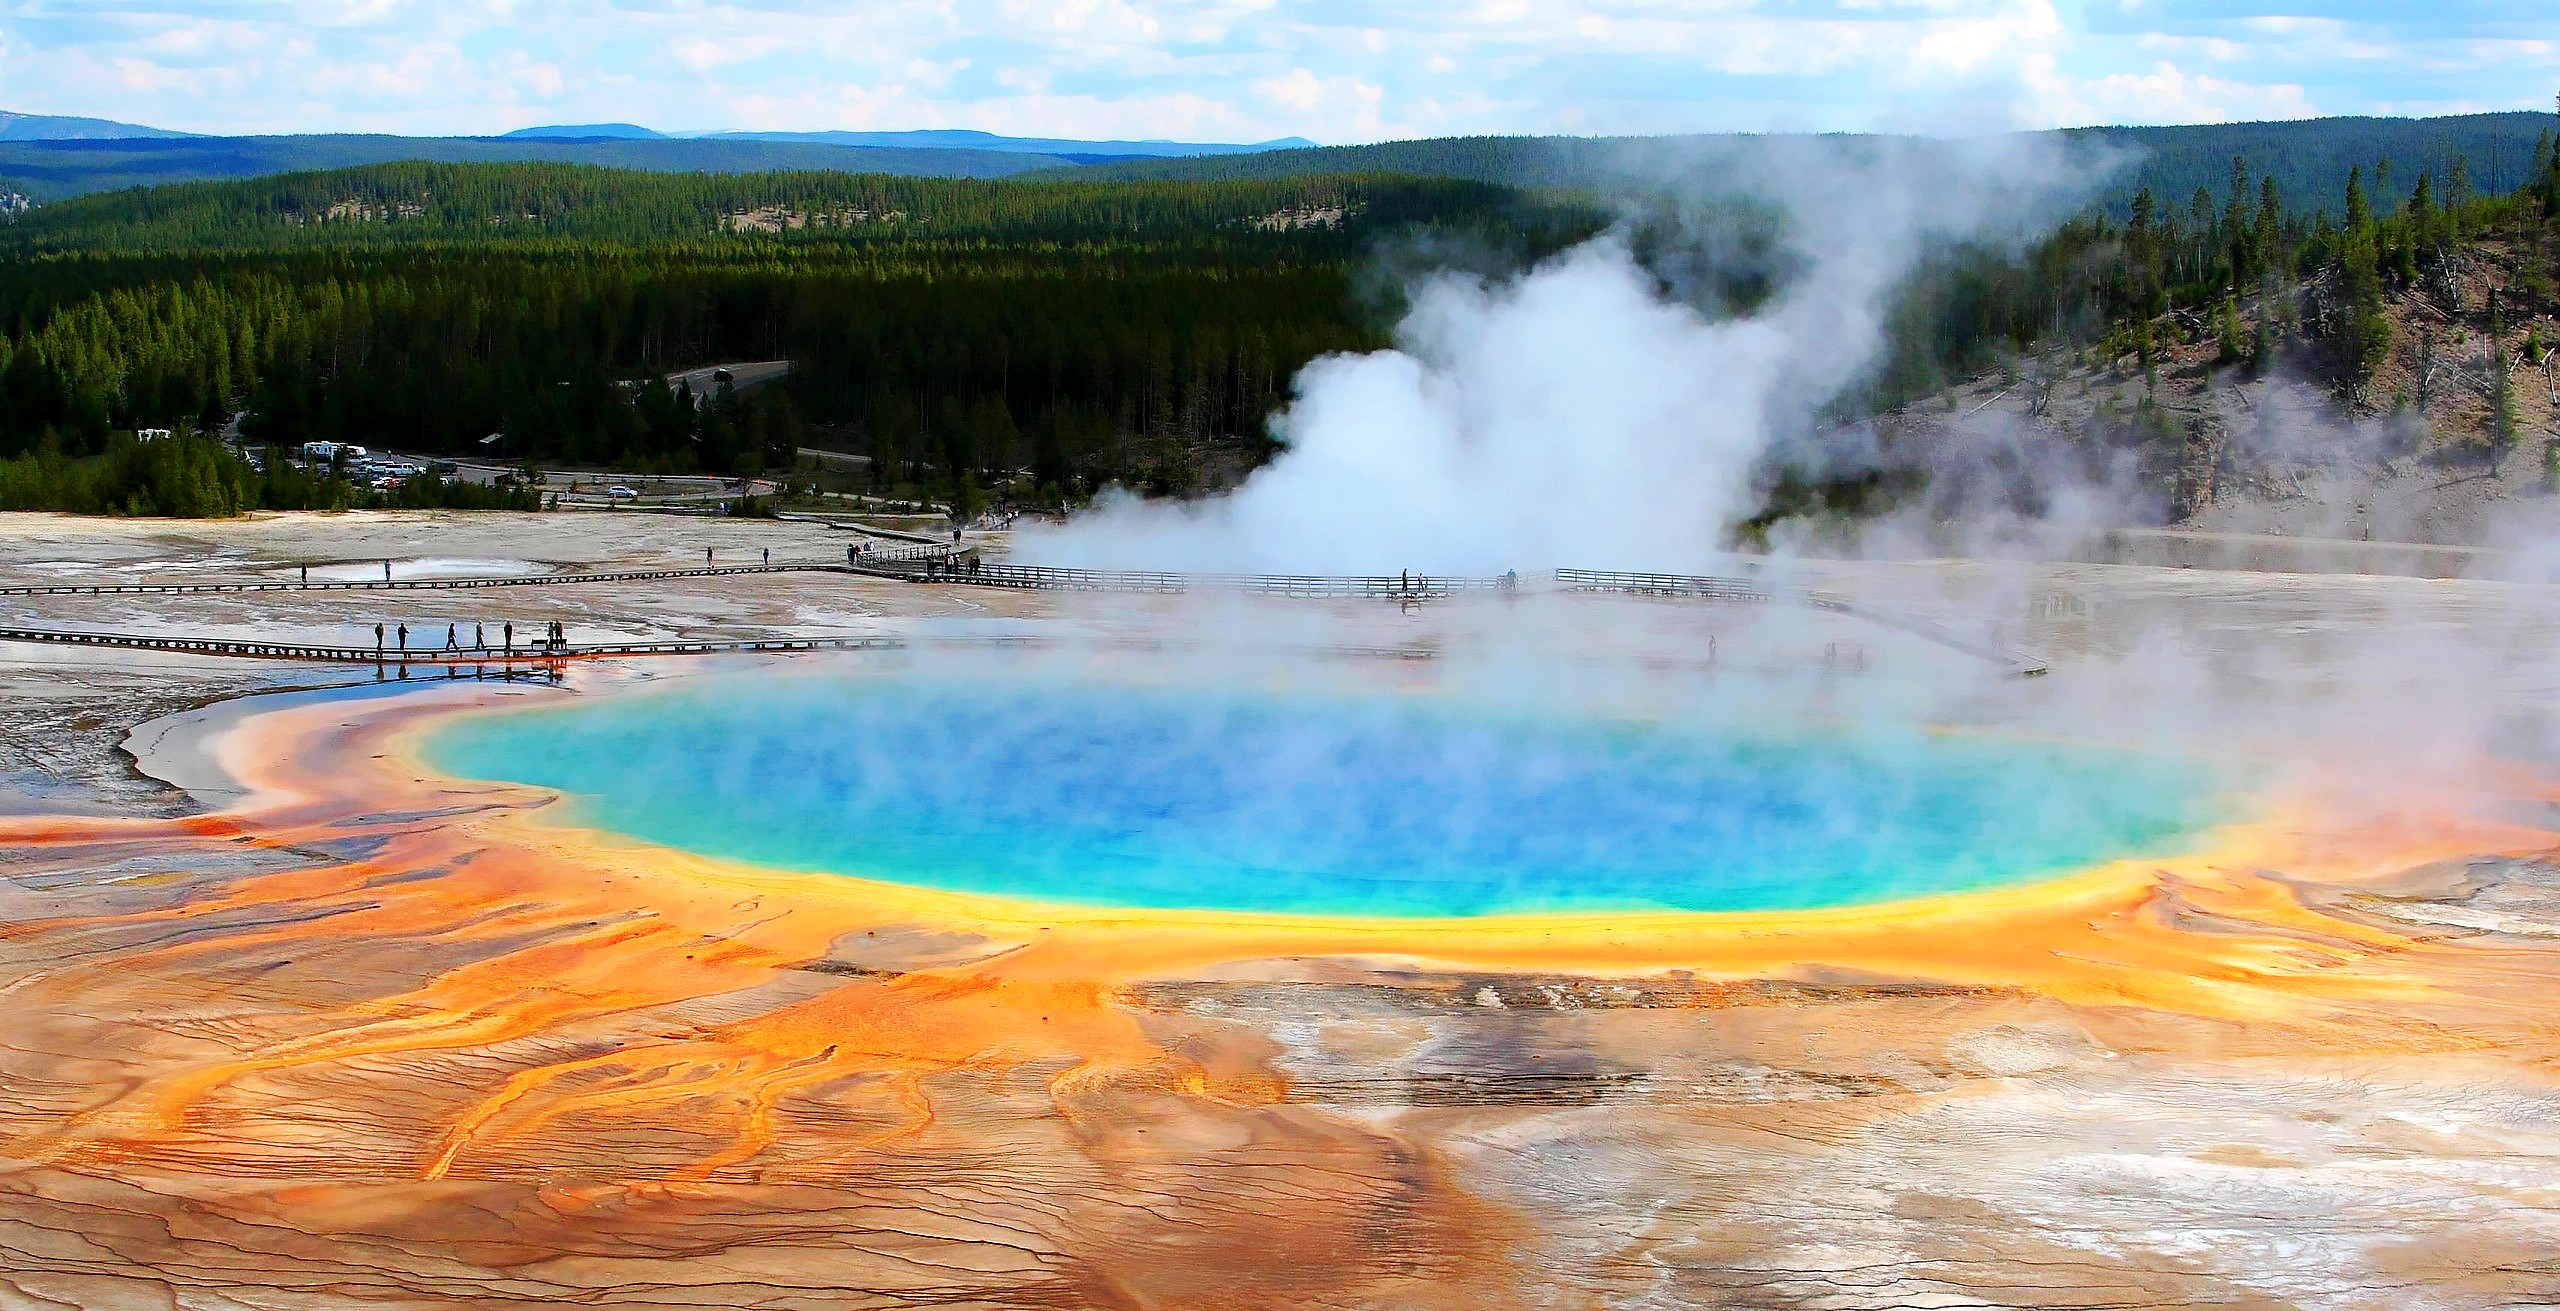 yellowstone national park Located primarily in the state of wyoming, yellowstone national park sits atop an enormous, slumbering supervolcano and is home to half of the world's geysers from a 300-foot-tall waterfall.